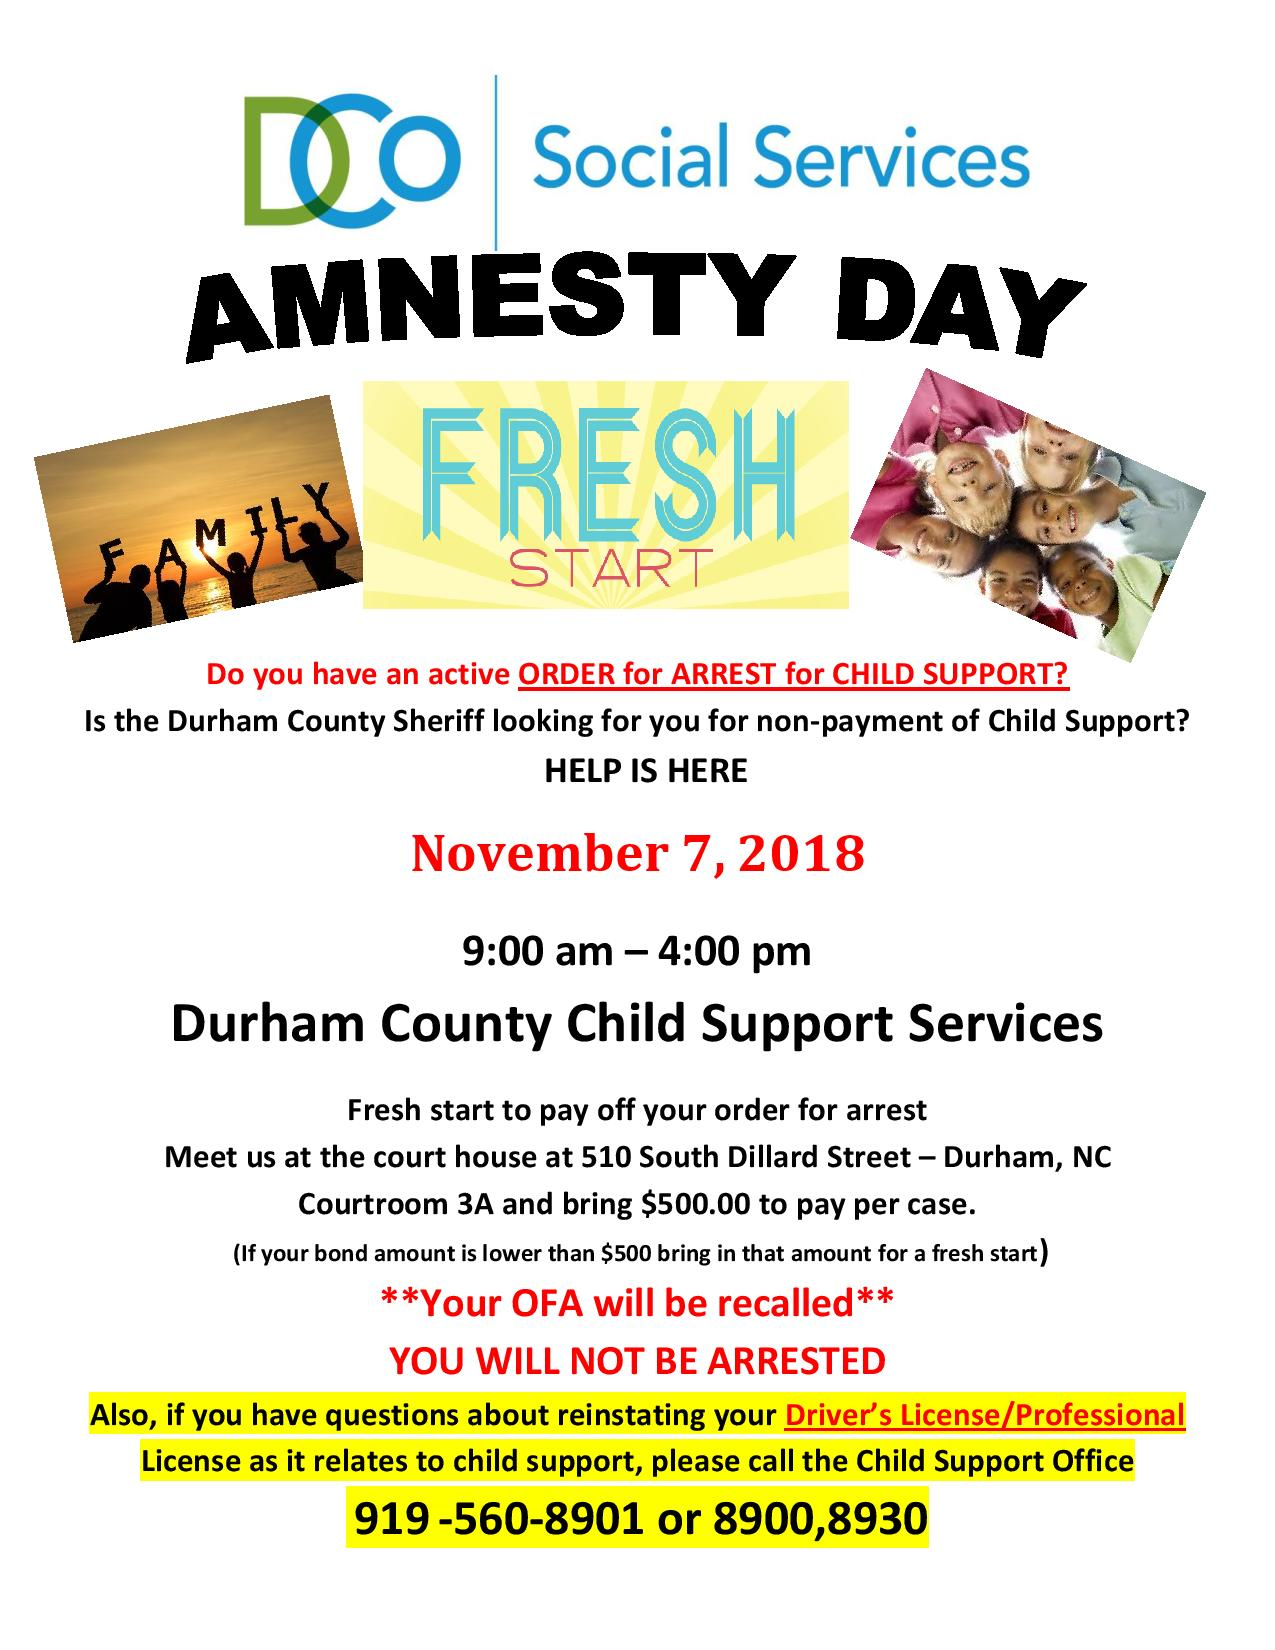 Social Services Durham County